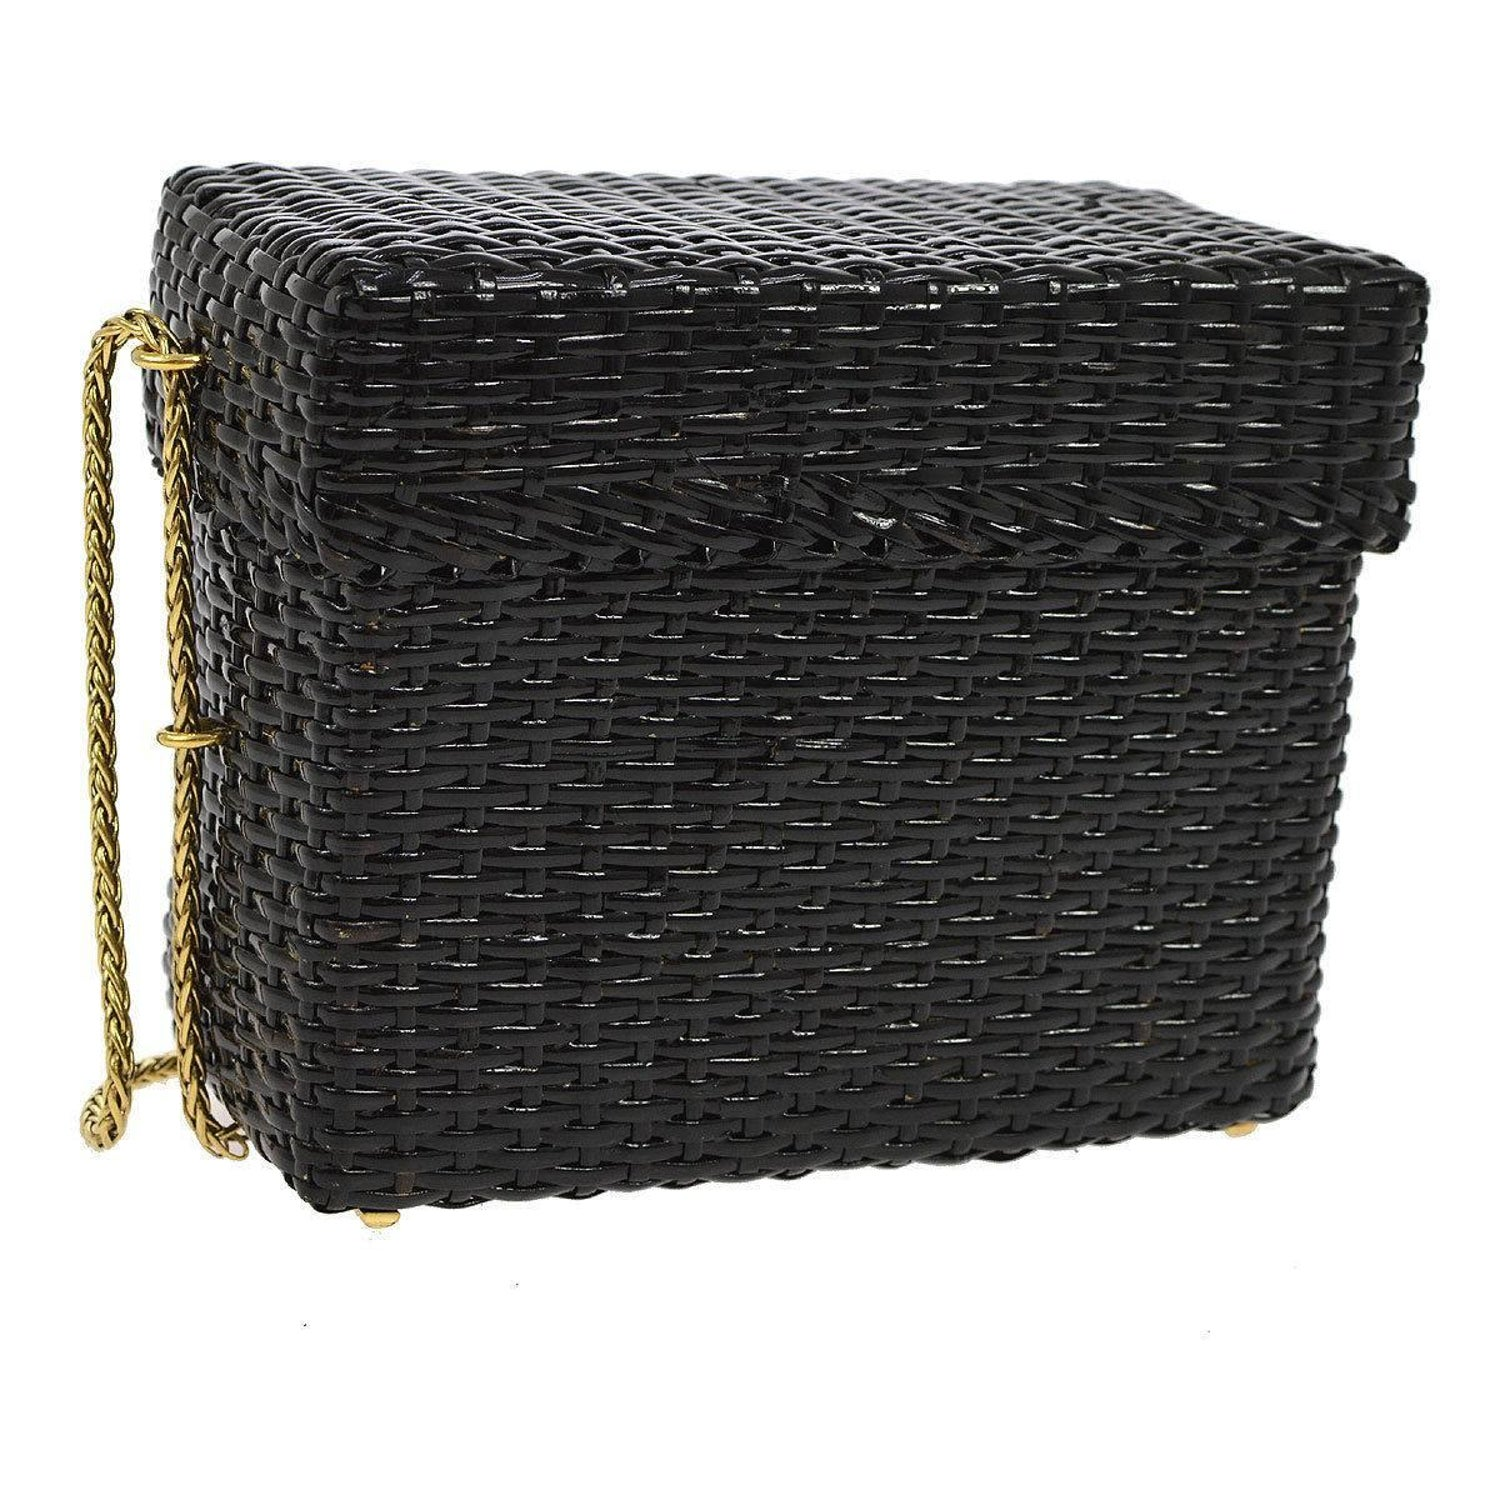 fed9df3fc77292 Chanel Rare Black Wicker Picnic Lunch Box Evening Shoulder Bag at 1stdibs